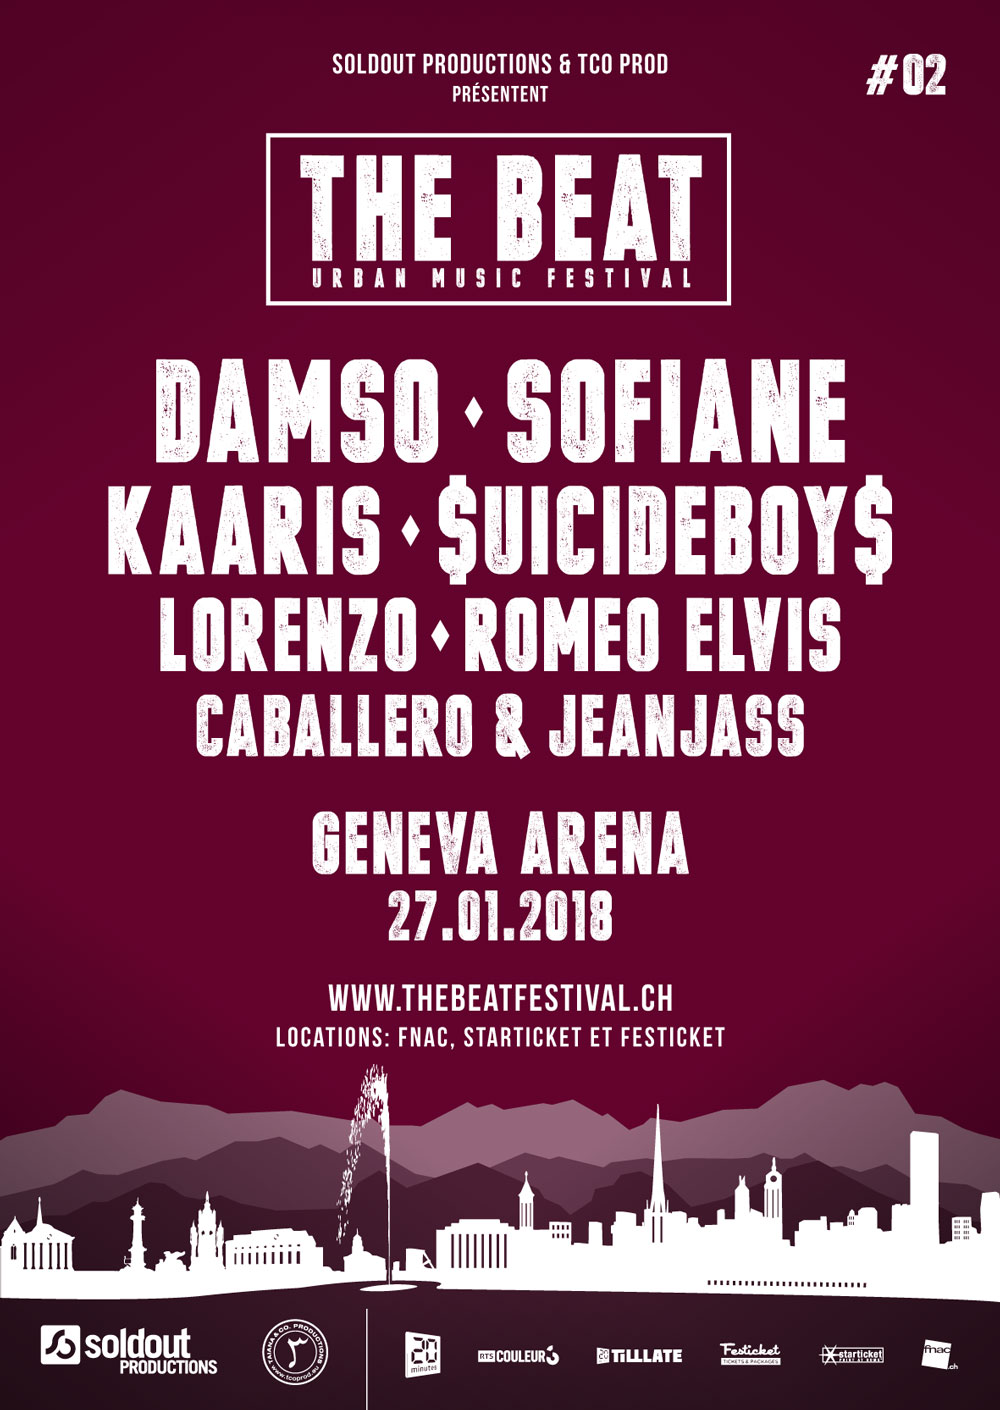 THE BEAT FESTIVAL #02